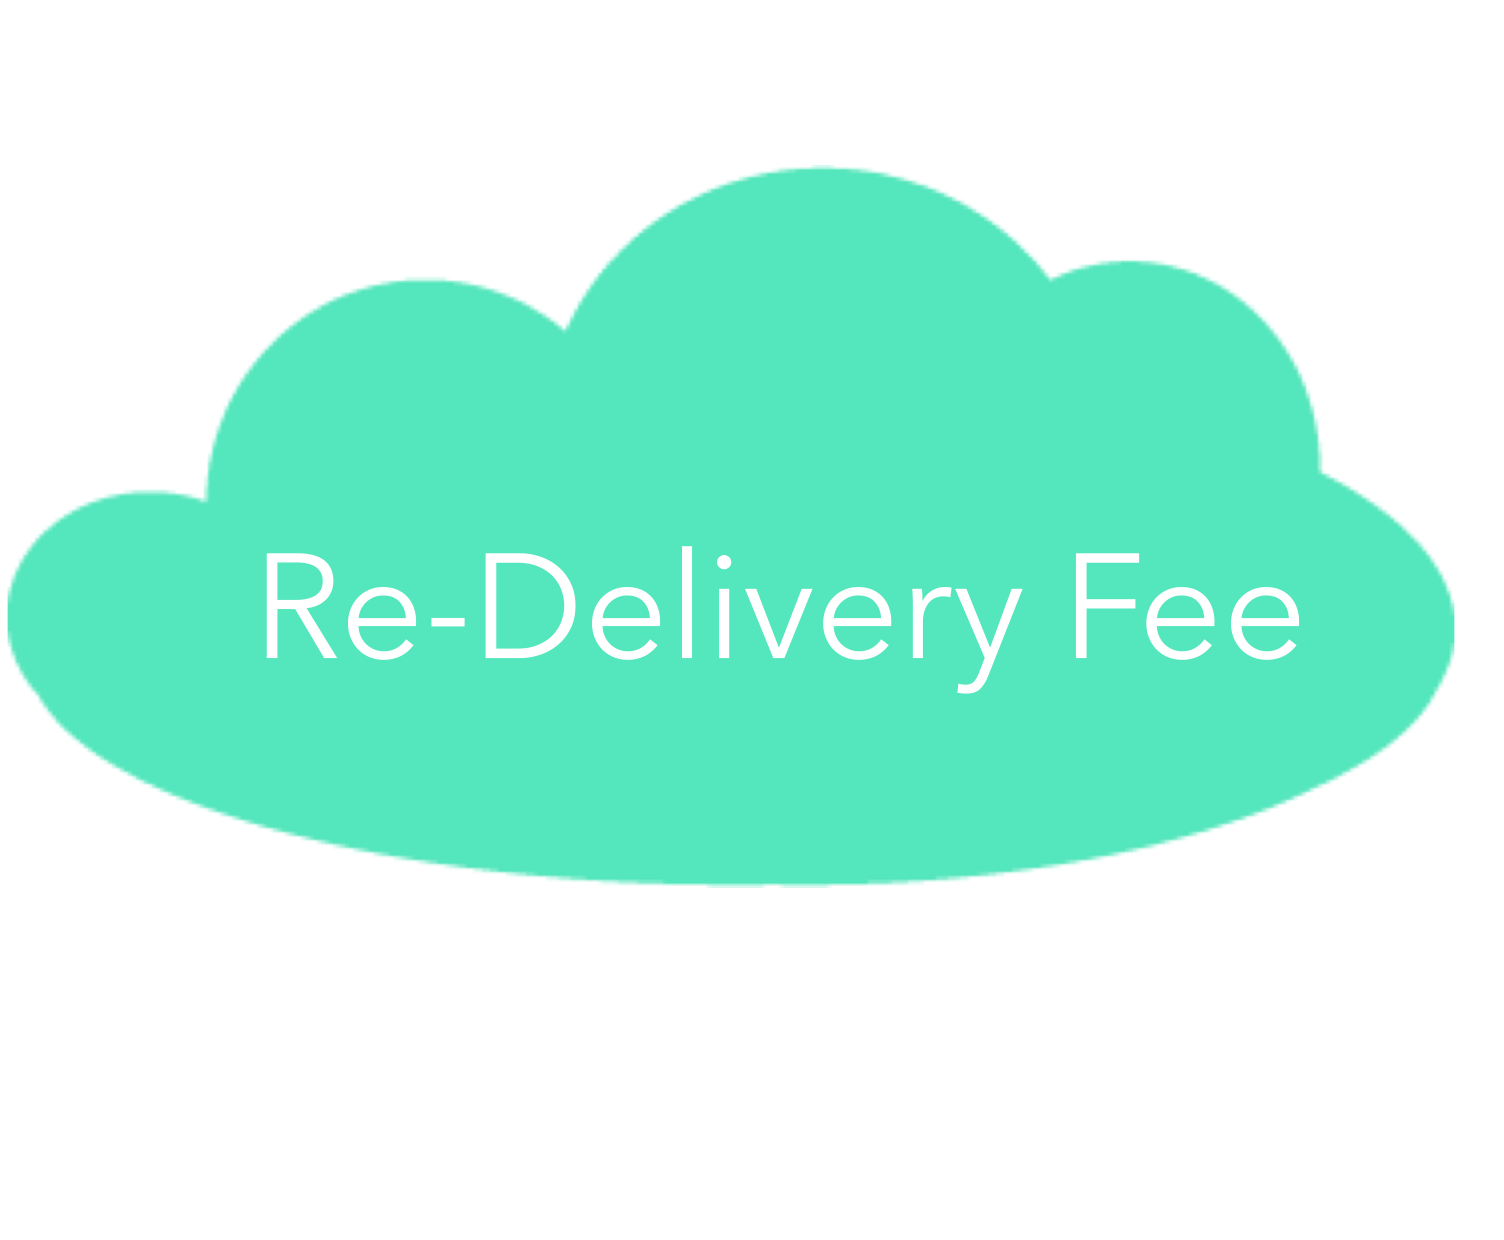 RE-DELIVERY FEE